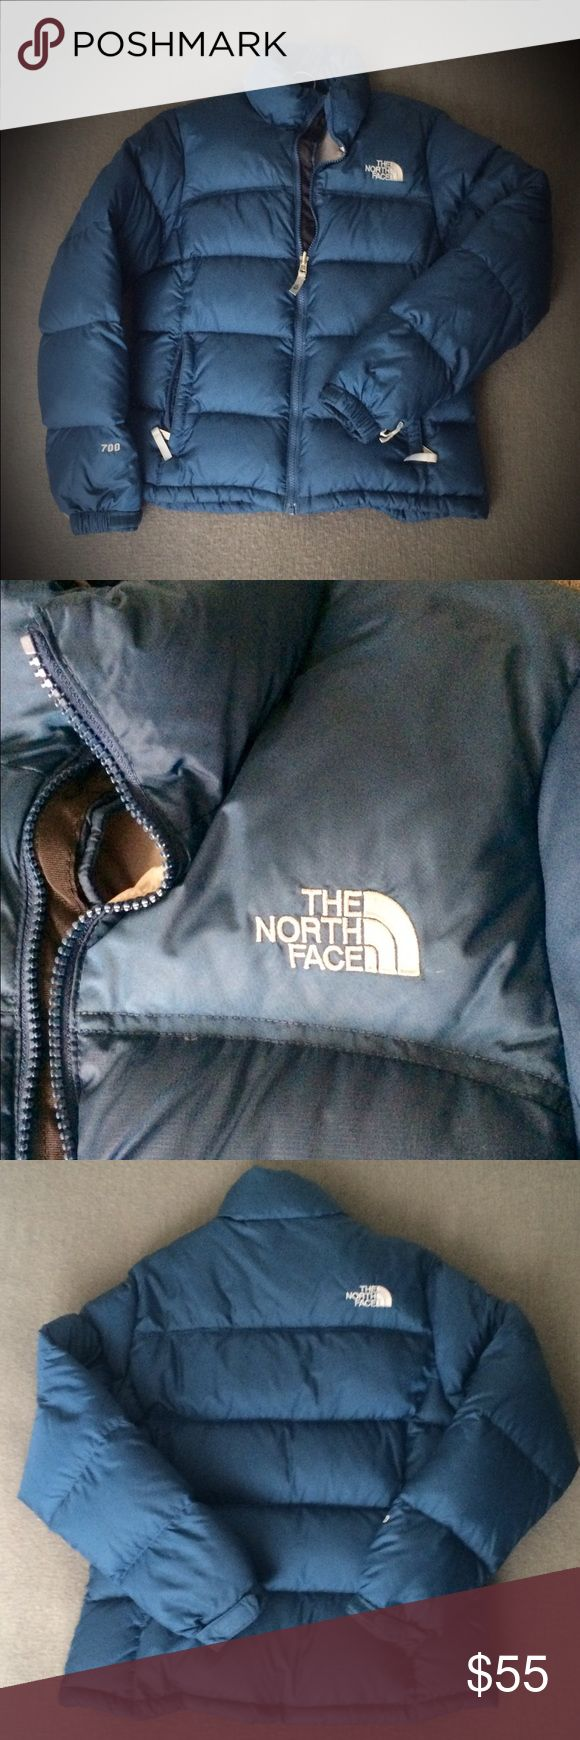 The North Face nuptse jacket The North Face Nuptse jacket. 700fill goose down puffer jacket. Color: blue Size: small. Great shape! No rips/stains/discoloration. Has been warn but was dry cleaned after winter. Great condition! The North Face Jackets & Coats Puffers